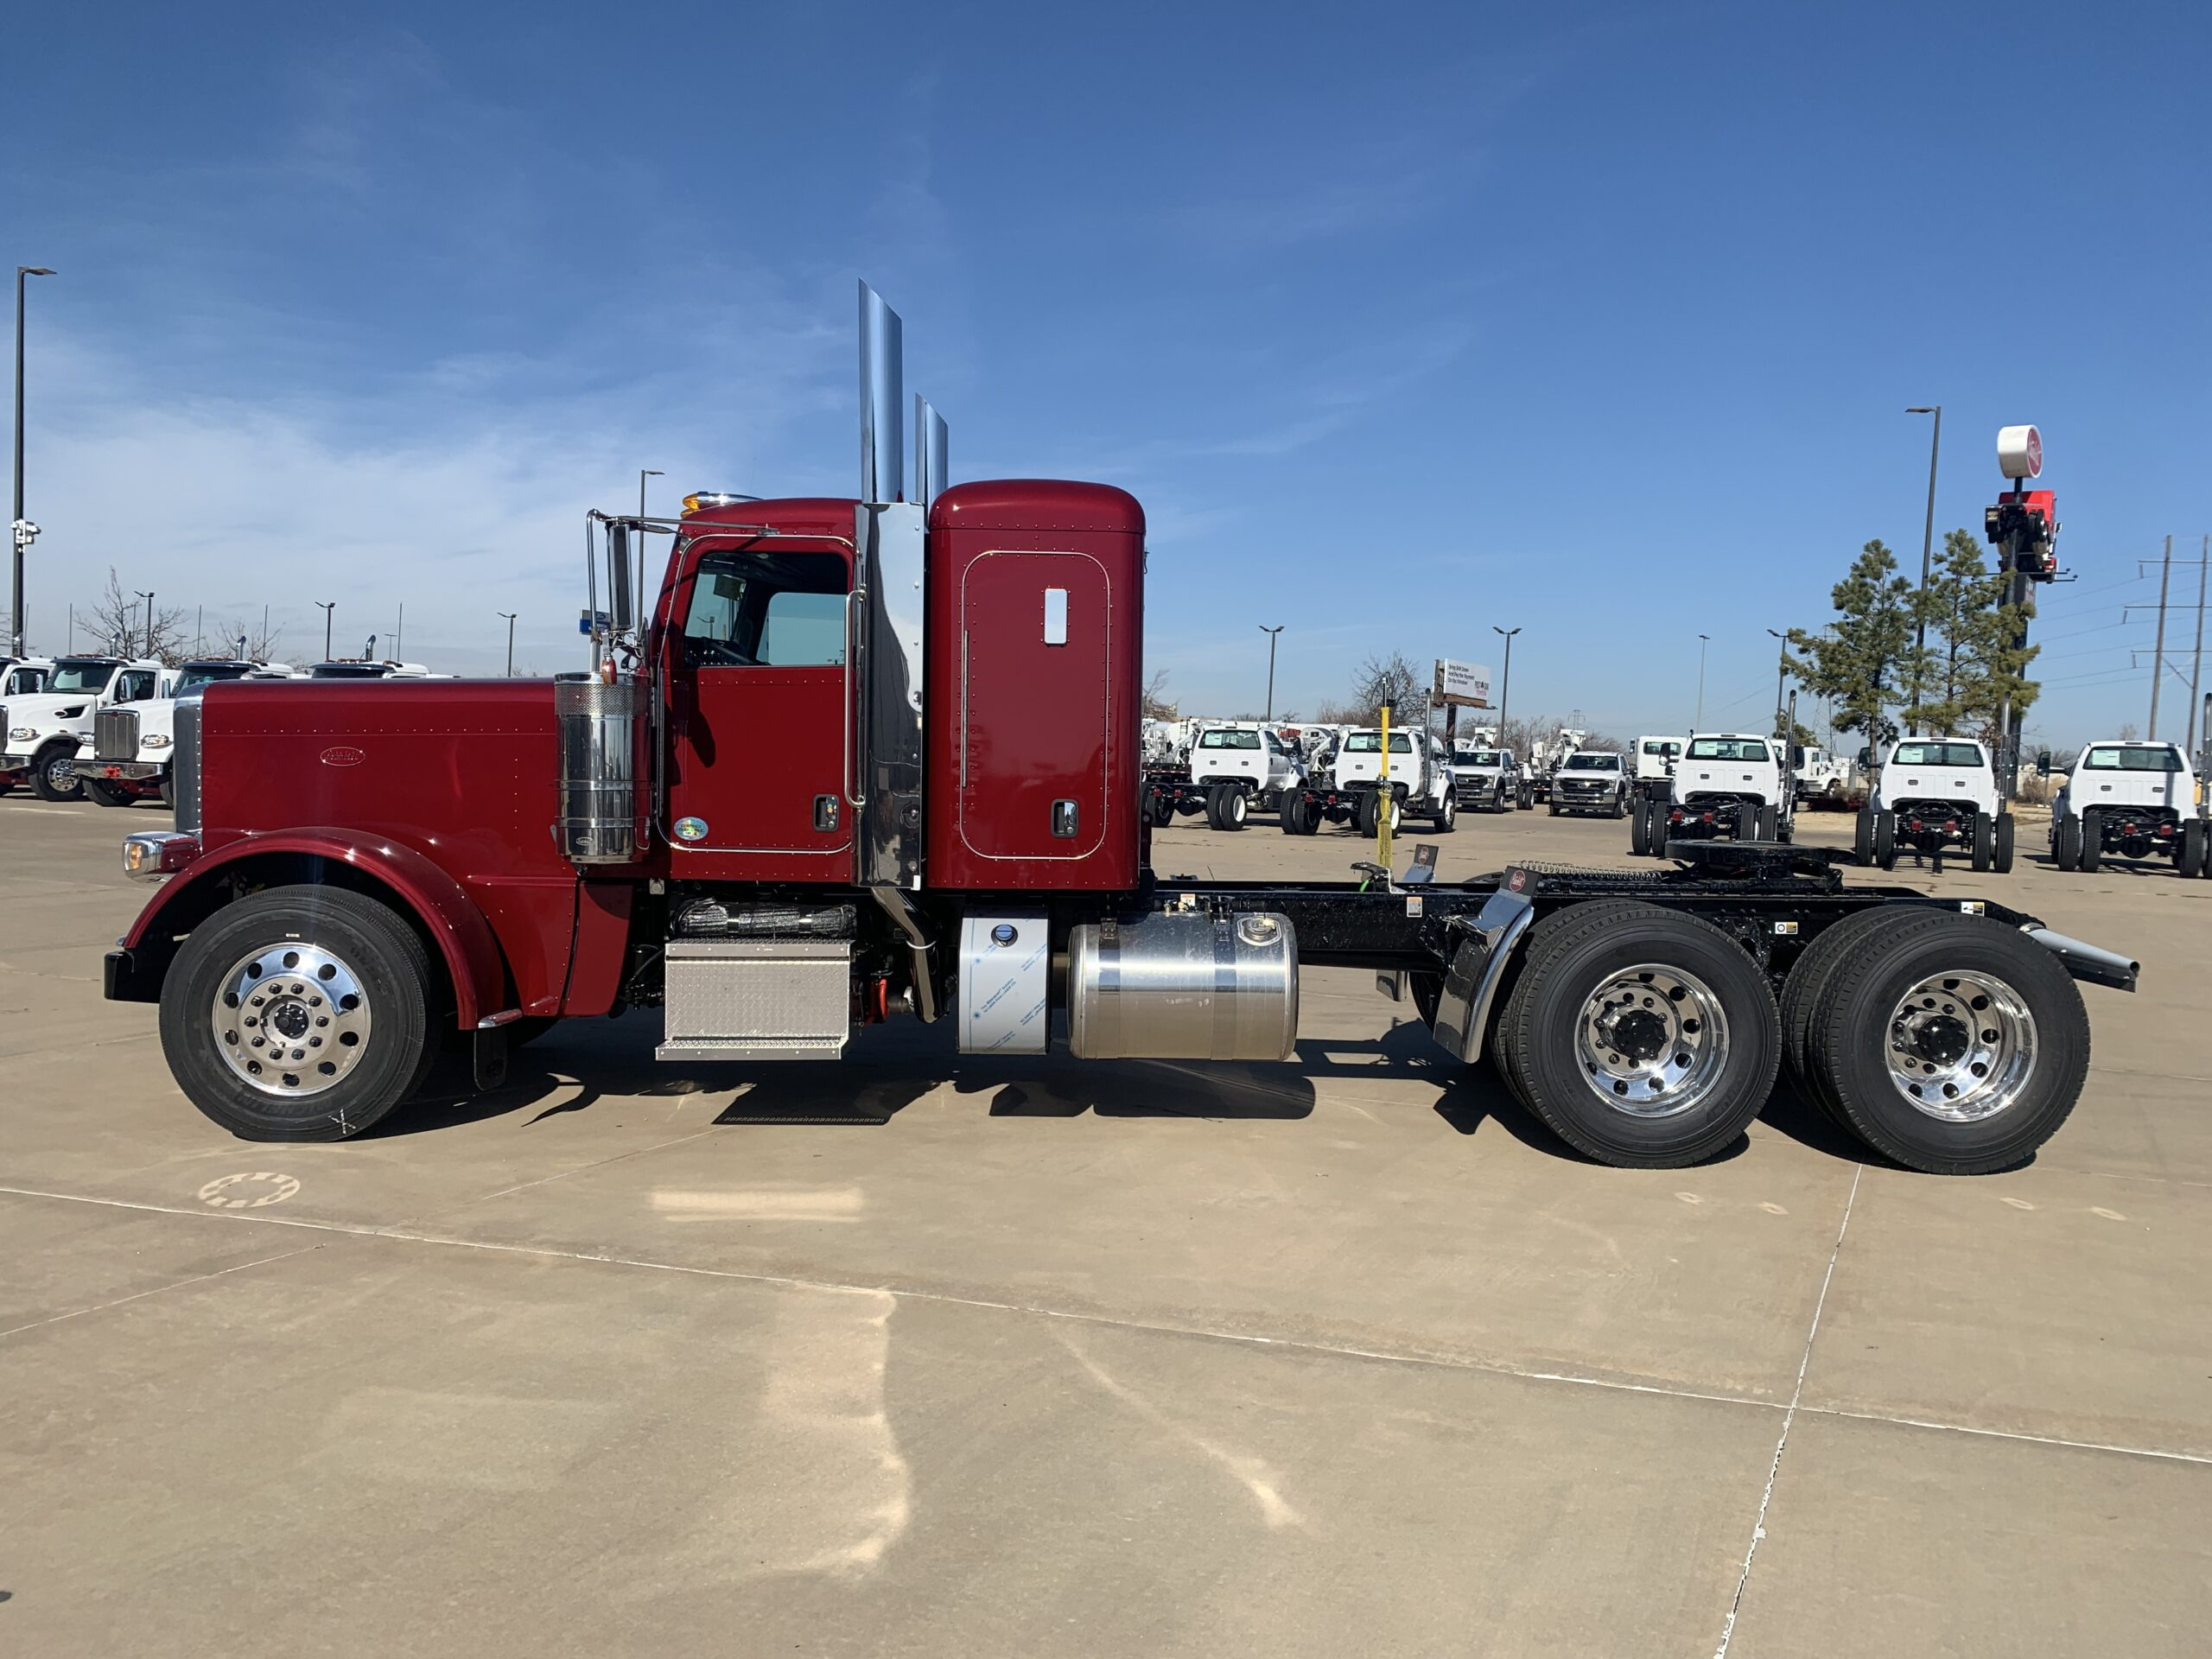 2022 Peterbuilt truck purchased for Simply Haulin'